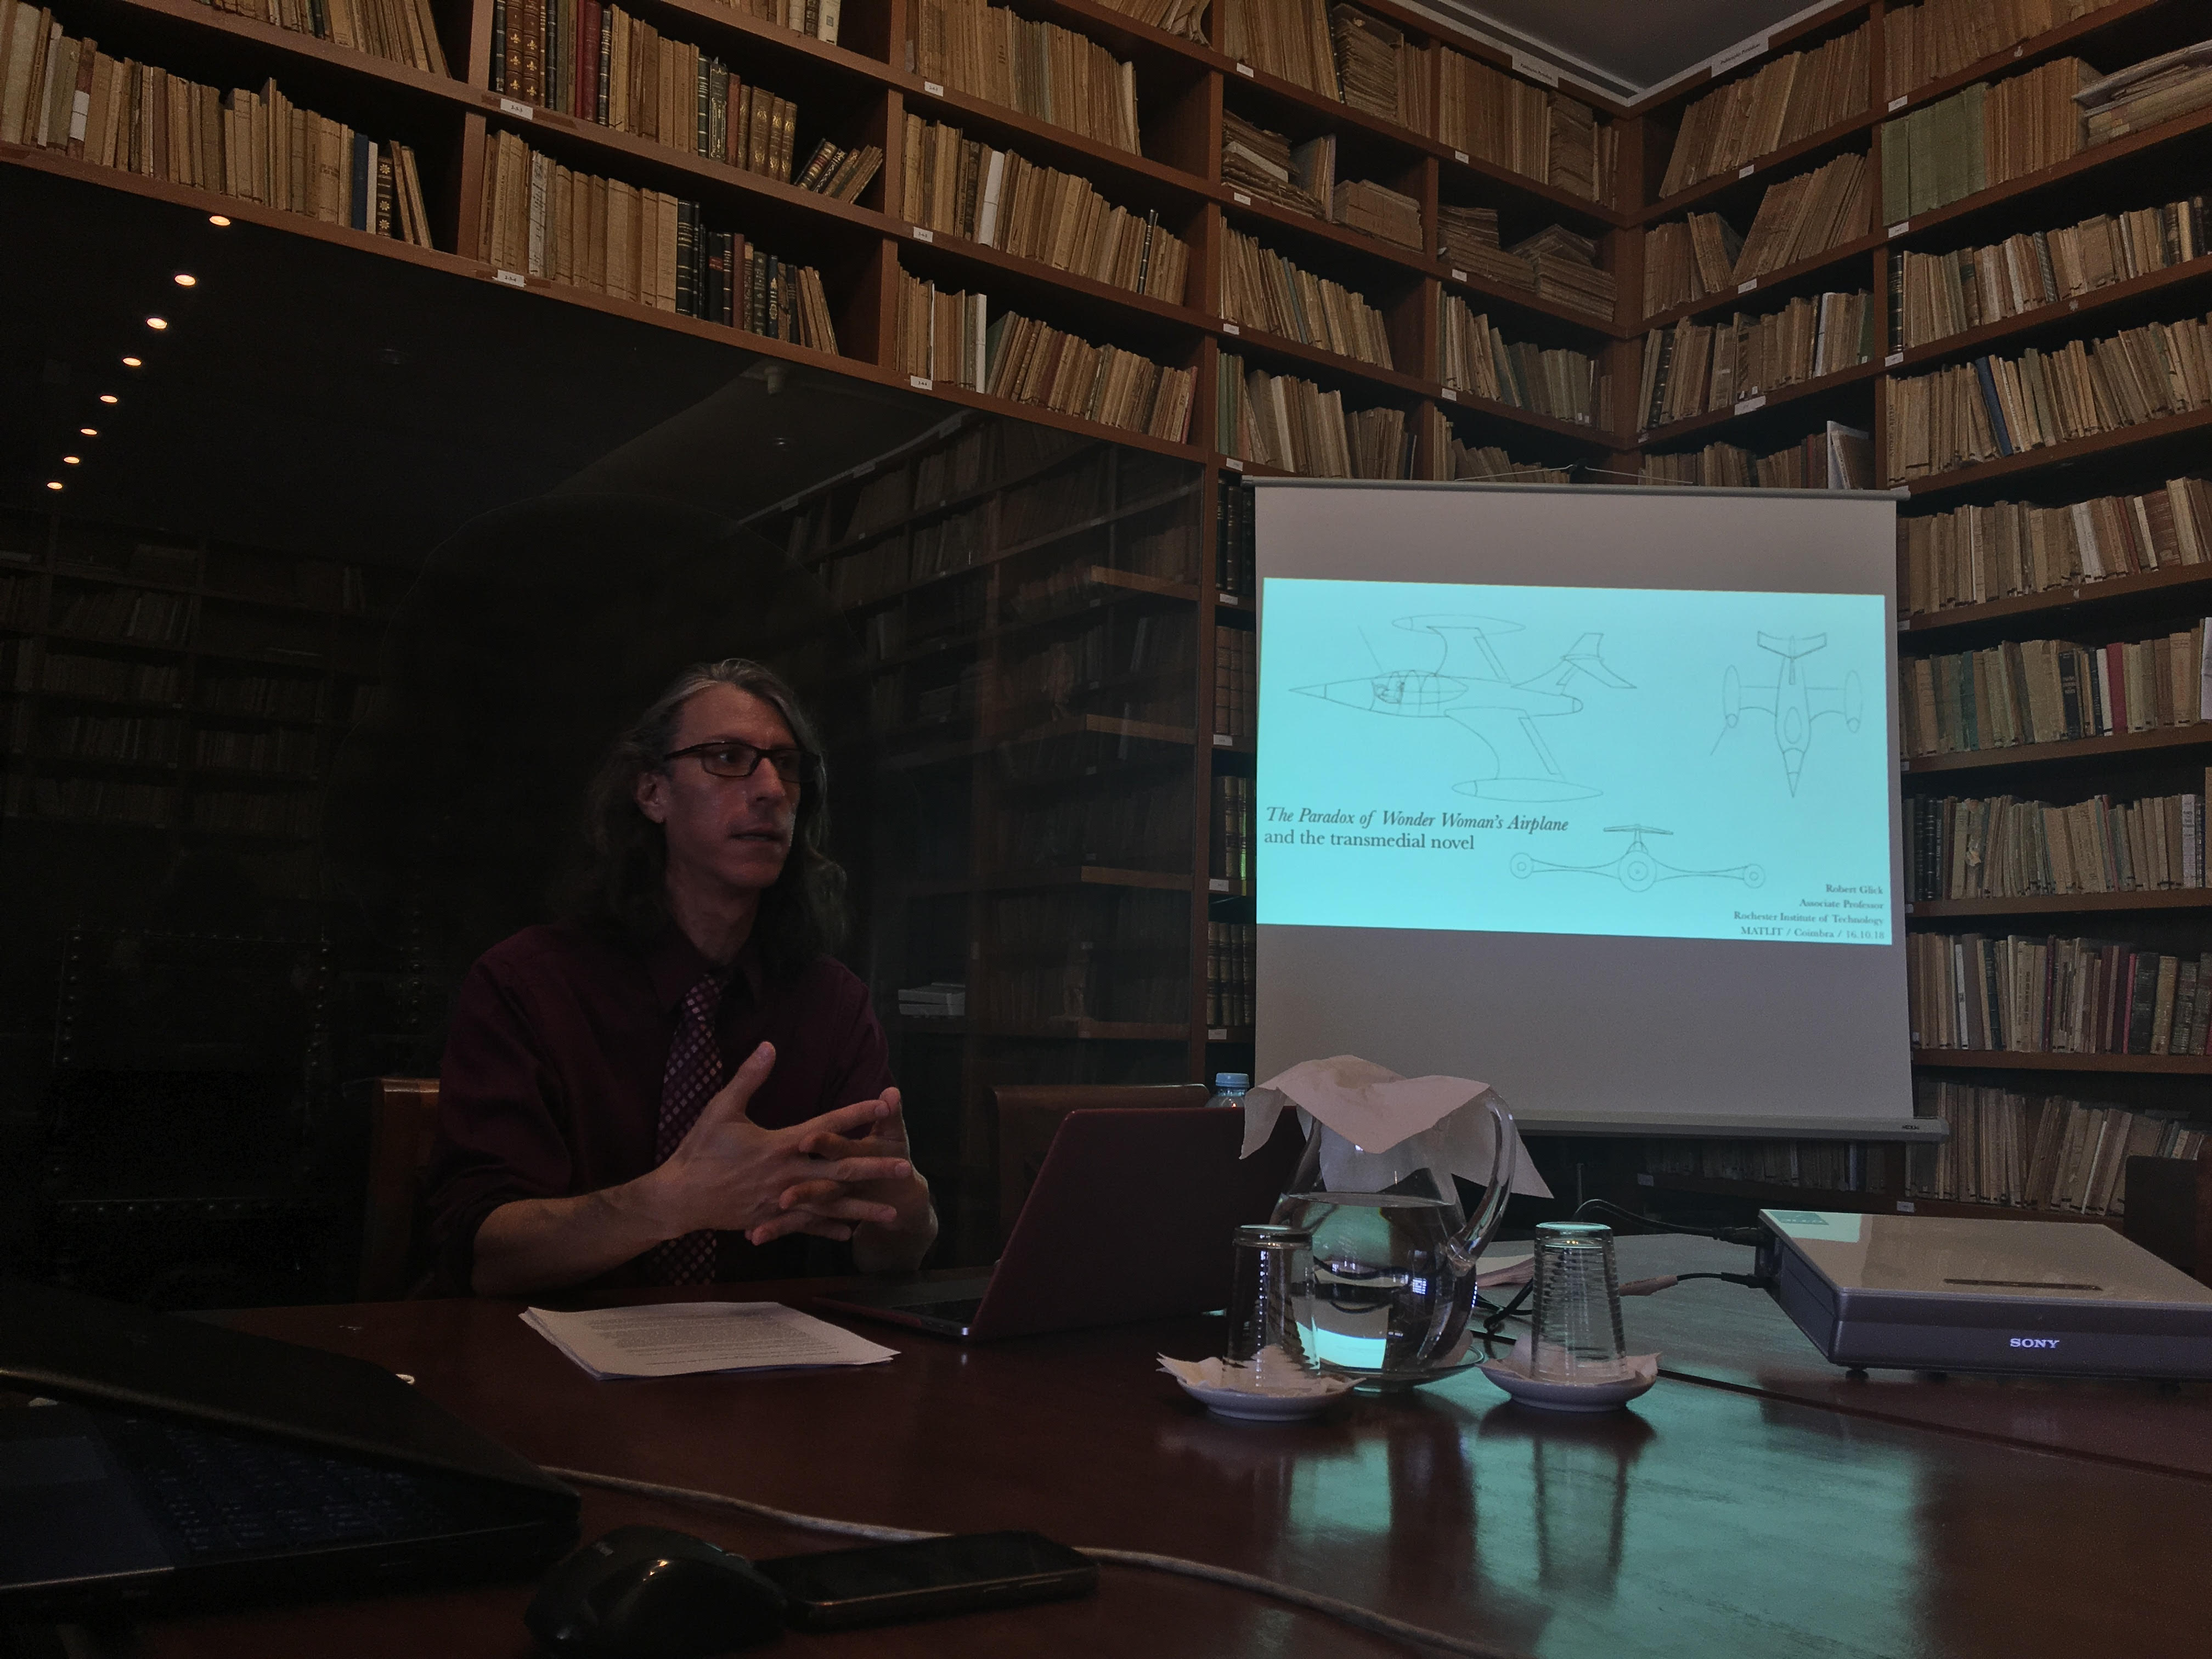 photo of Robert lecturing in a library